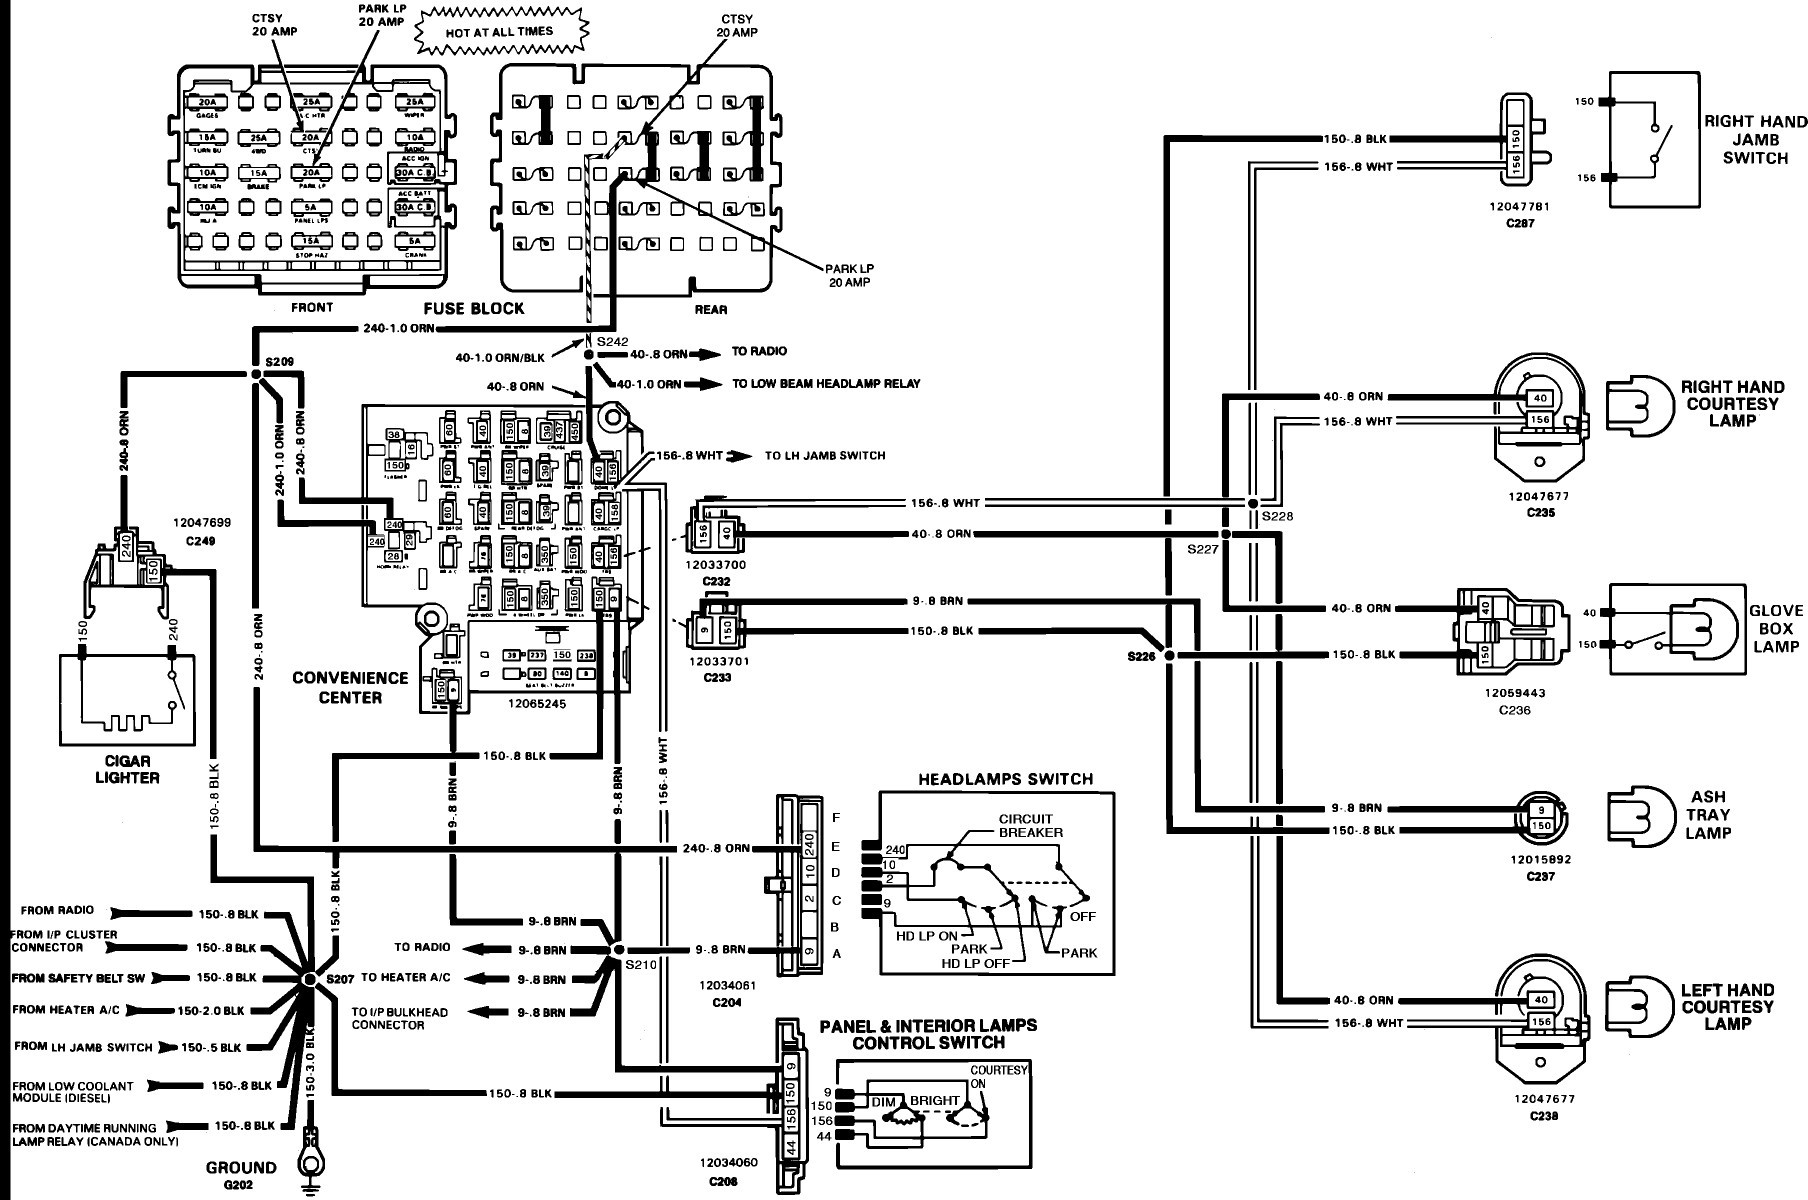 1995 gmc sierra ignition wiring diagram charging alternator 95gmc trusted diagrams